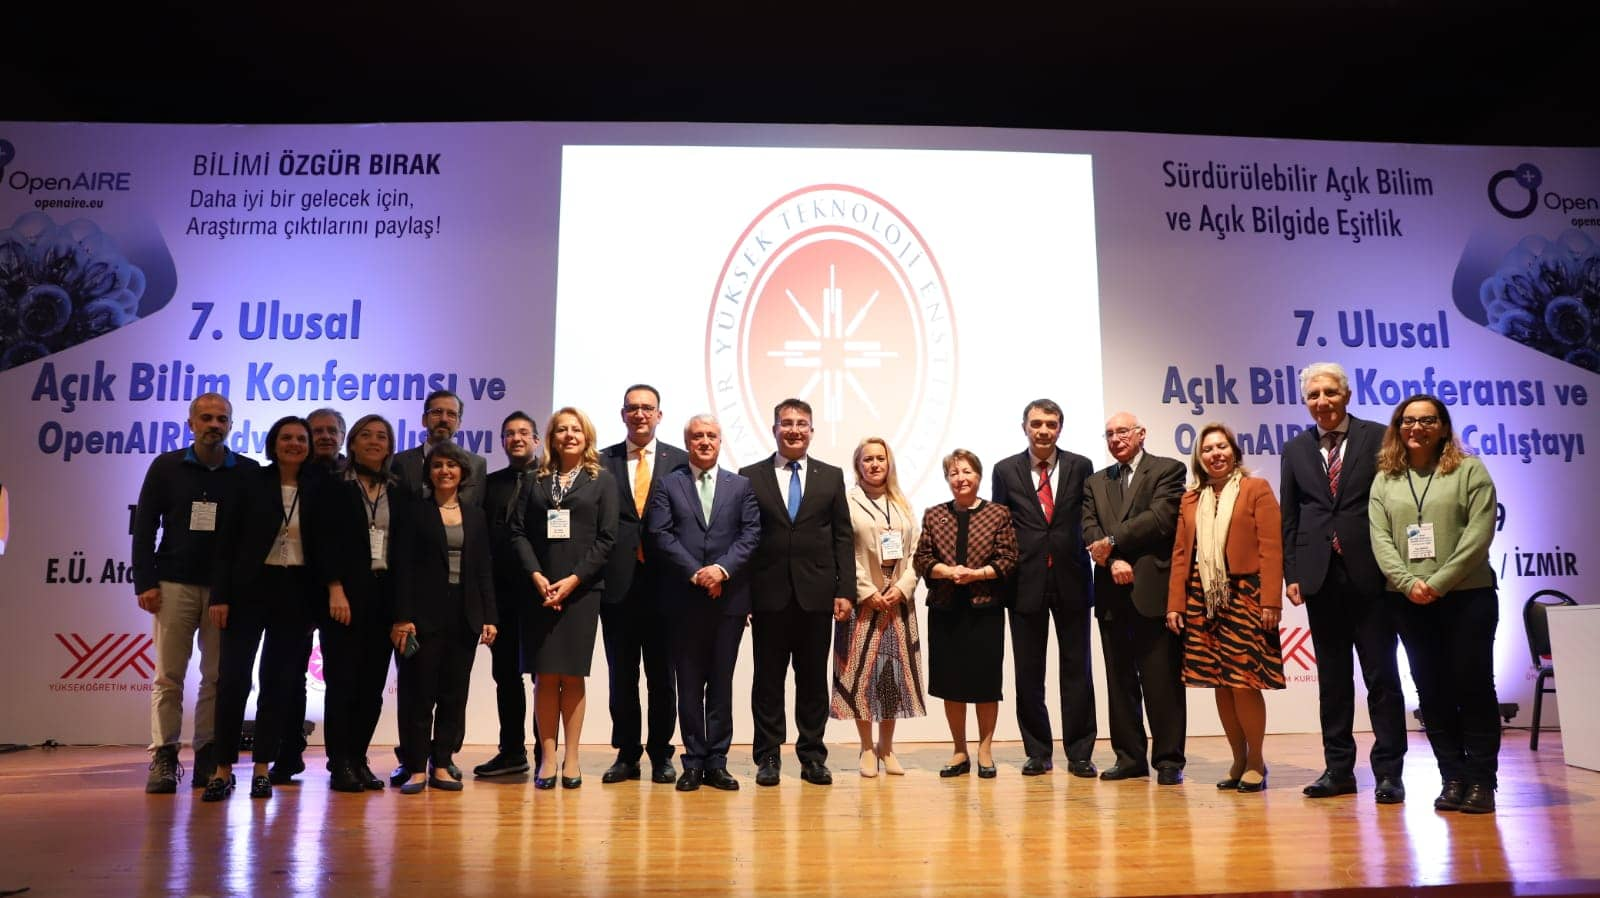 Sustainable Open Science and Equity in Open Knowledge in Turkey: The 7th National Open Science Conference and OpenAIRE Advance Workshop